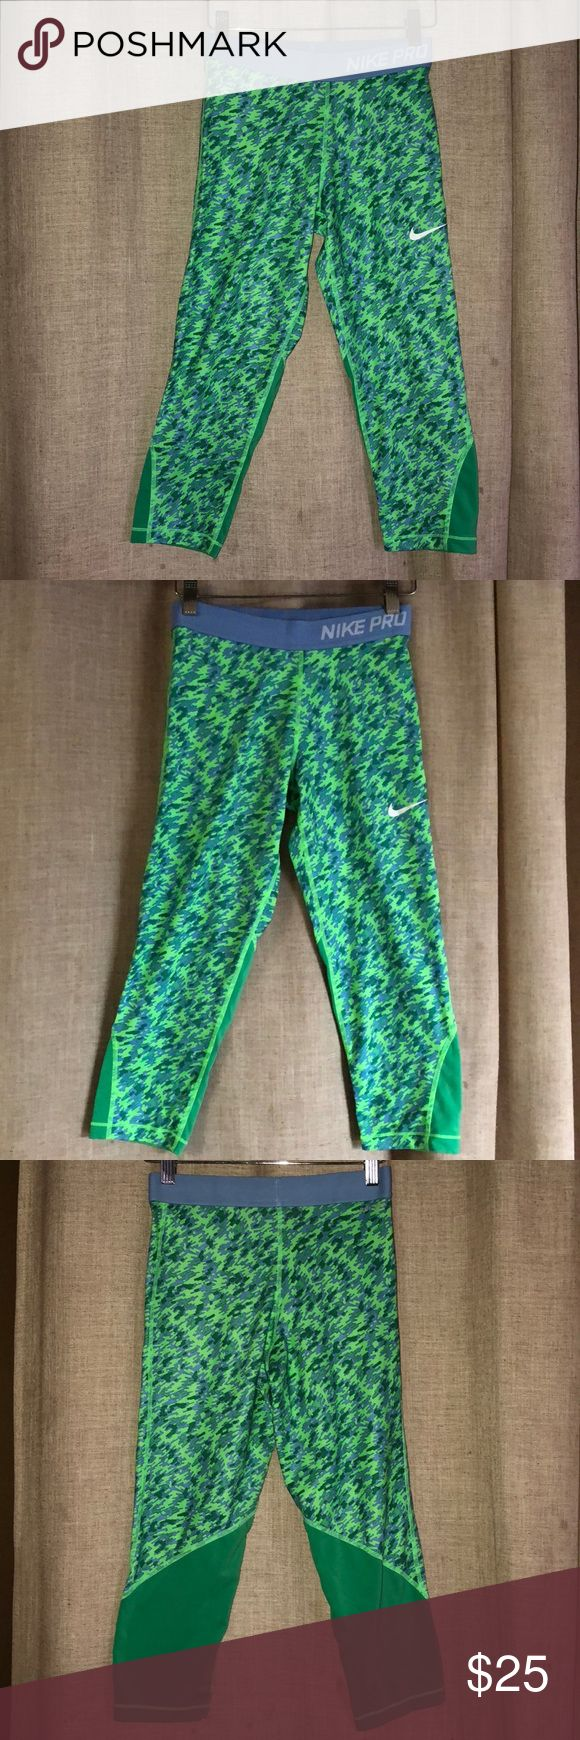 Nike Pro Capri leggings Perfect to wear if you're looking for something light yet fitting, has a camo design. Great for hikes, and looks even better on. Never wore. Size : XL Nike Pants Capris